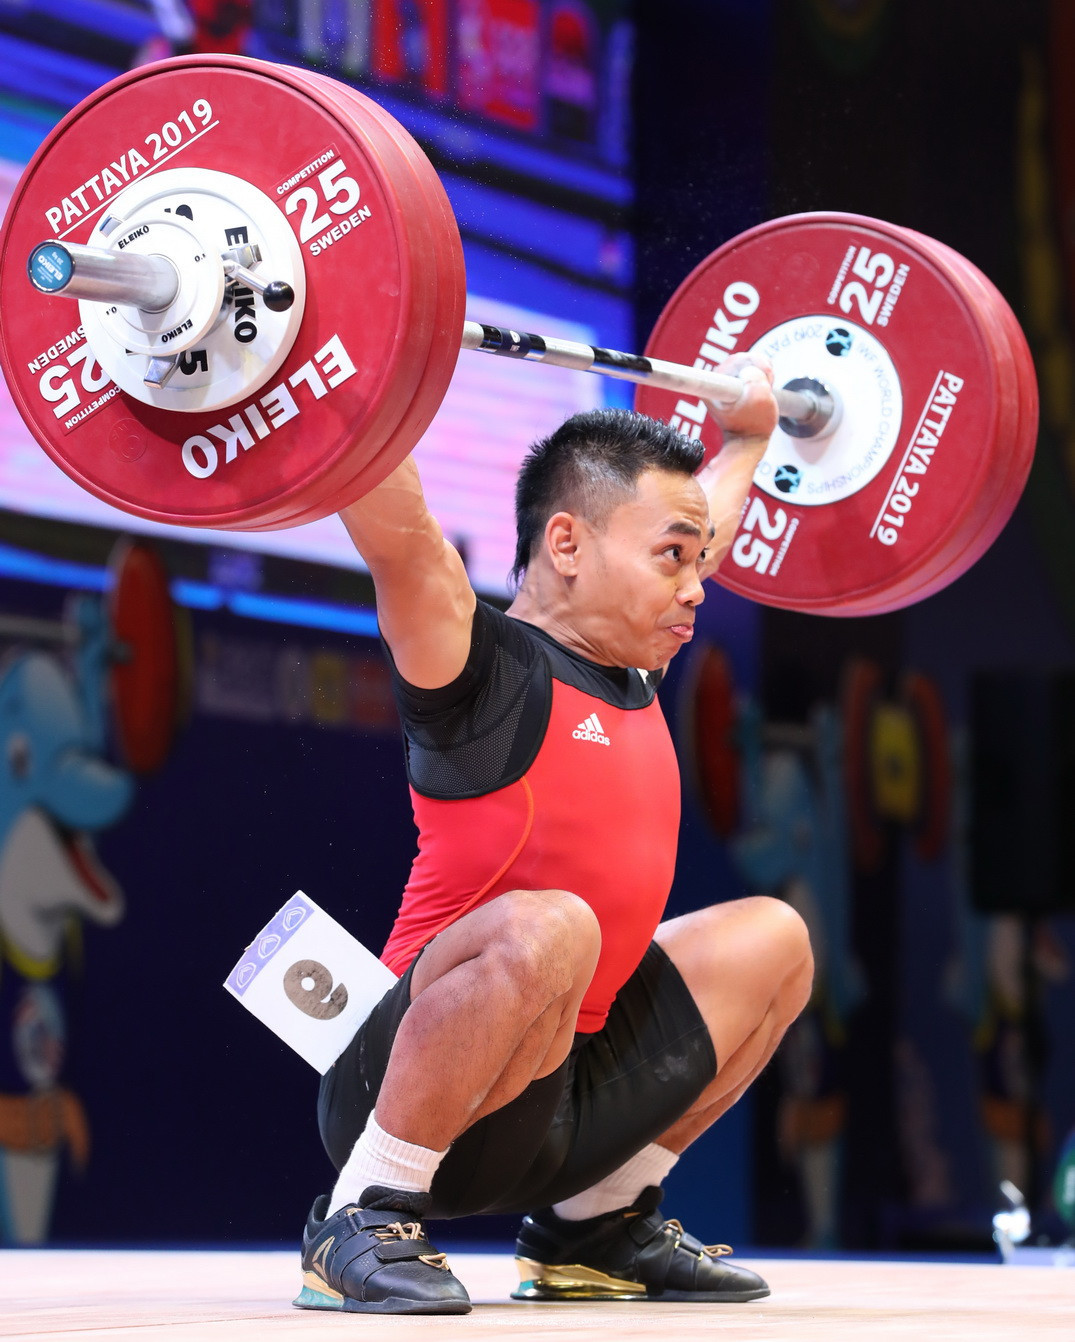 Defending champion Eko Yuli Irawan of Indonesia was the overall runner-up with 306kg ©IWF